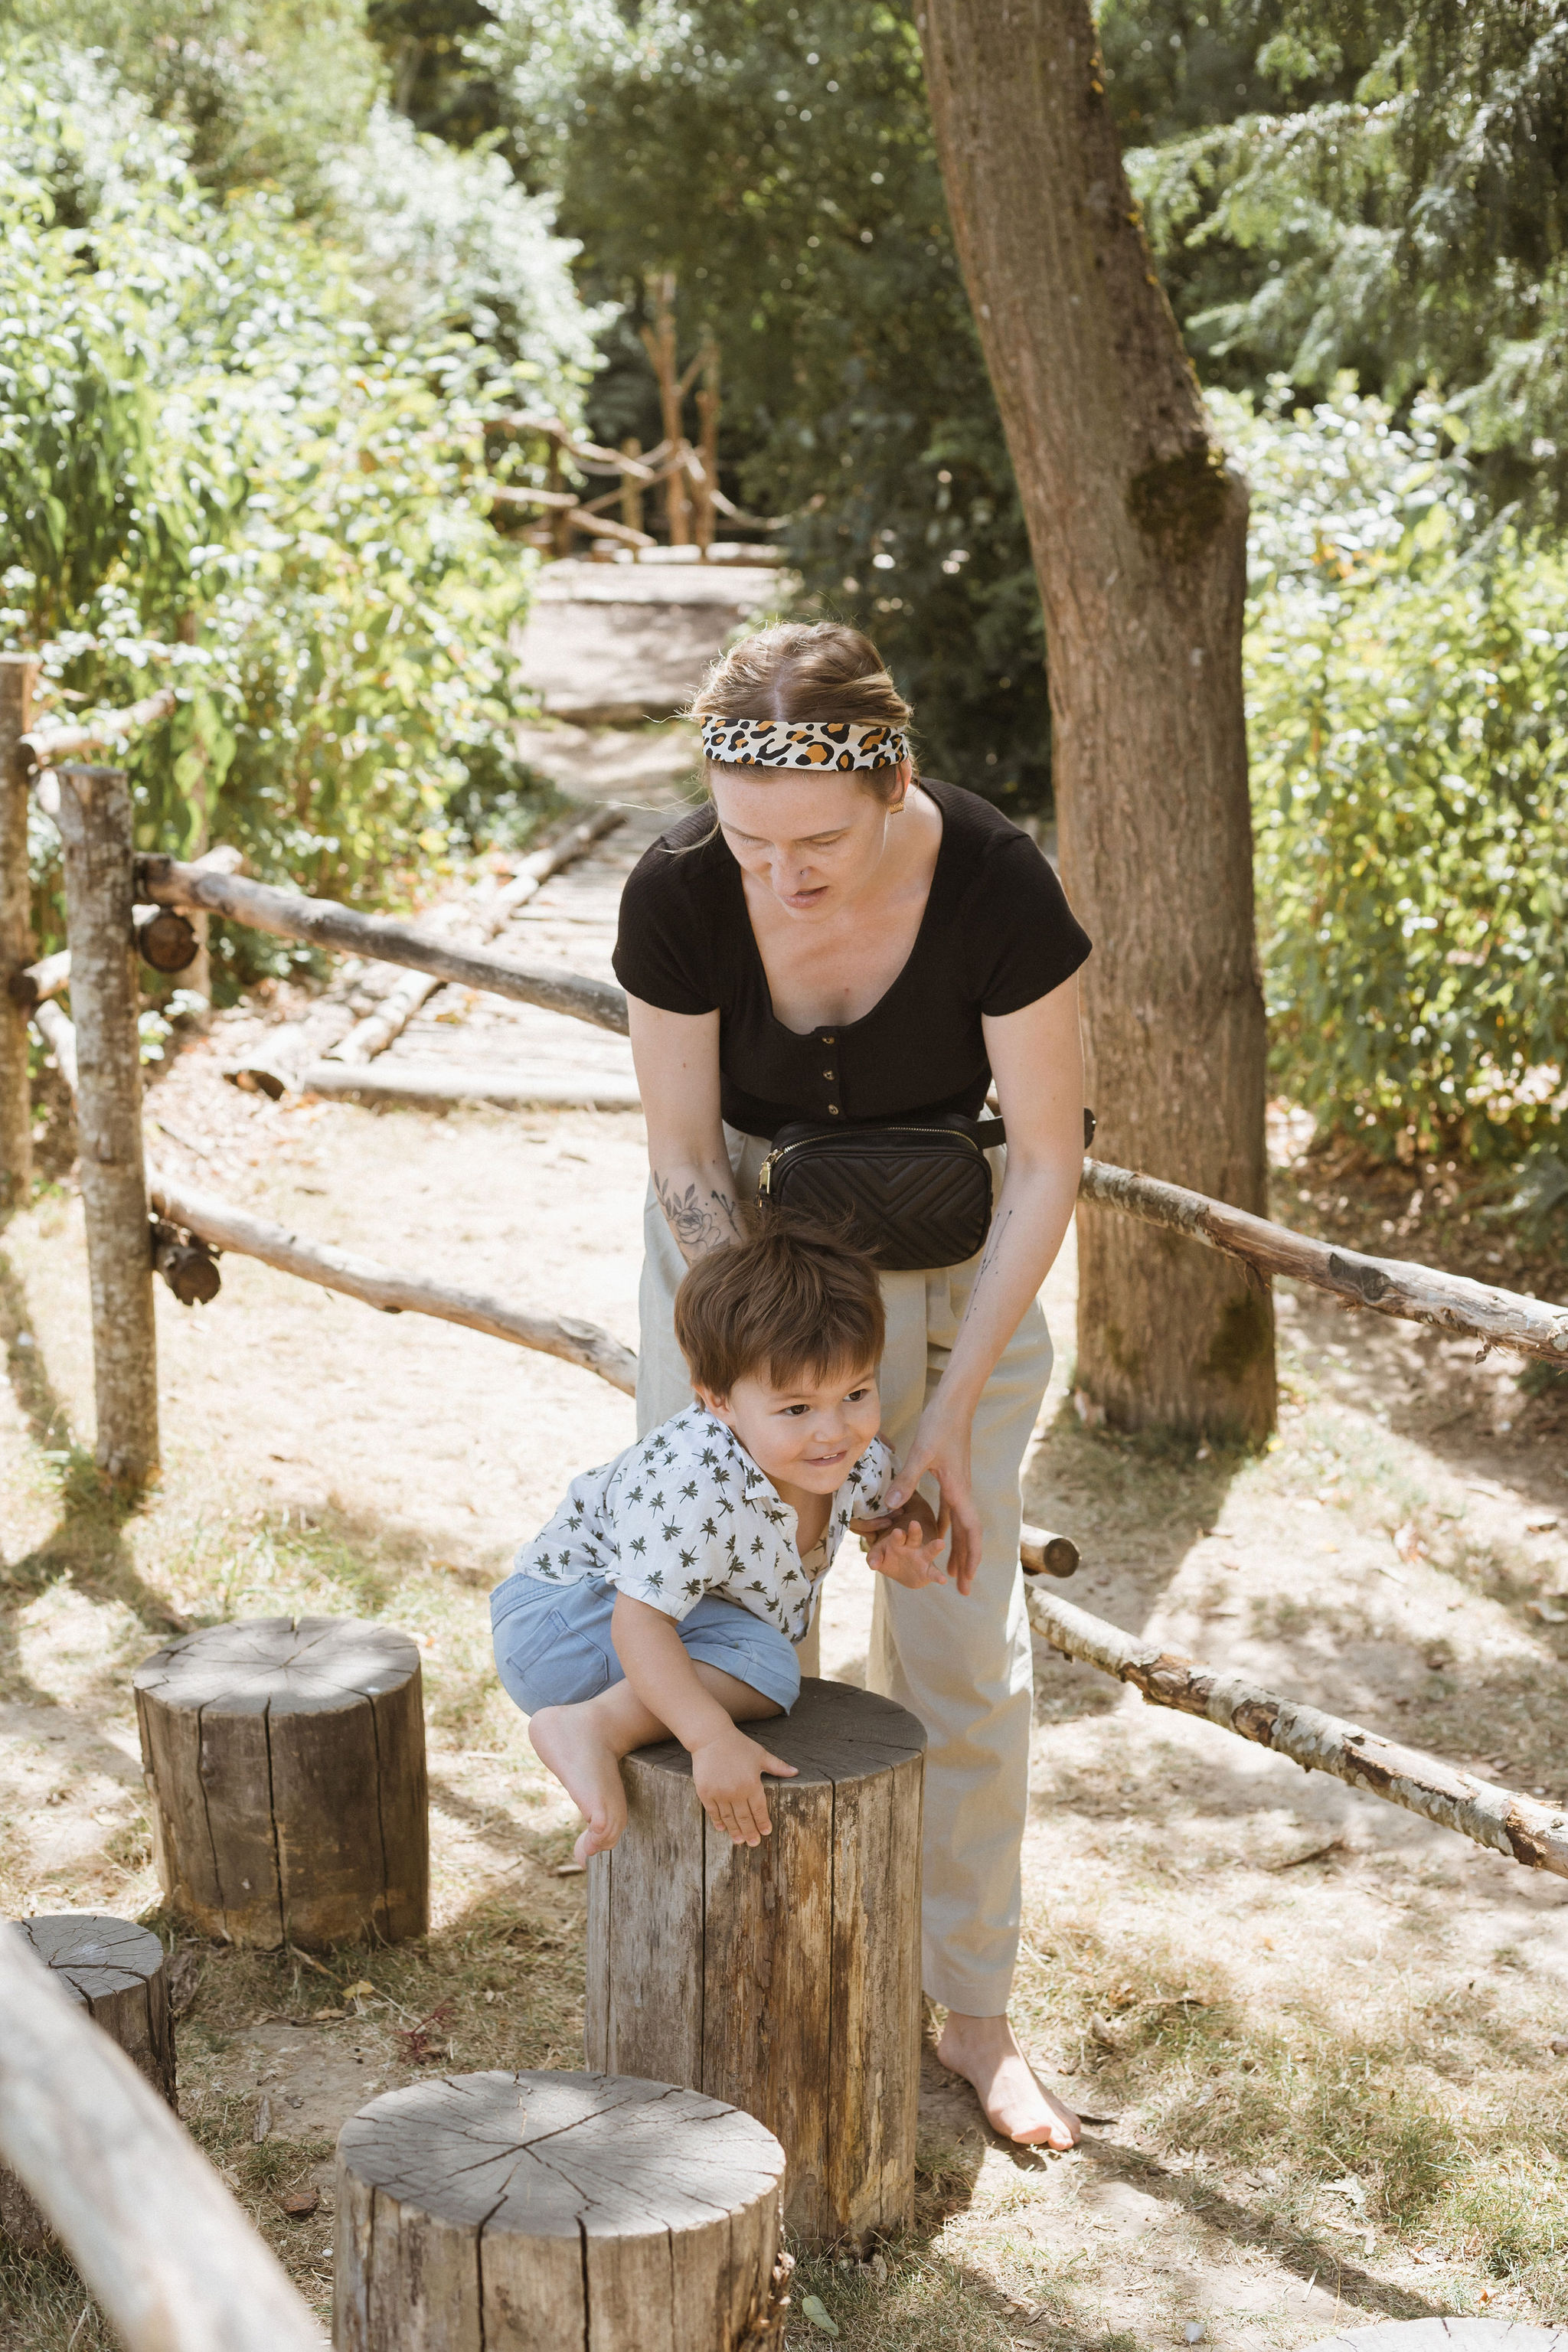 paris zoo family fun photographer iheartparis.jpg